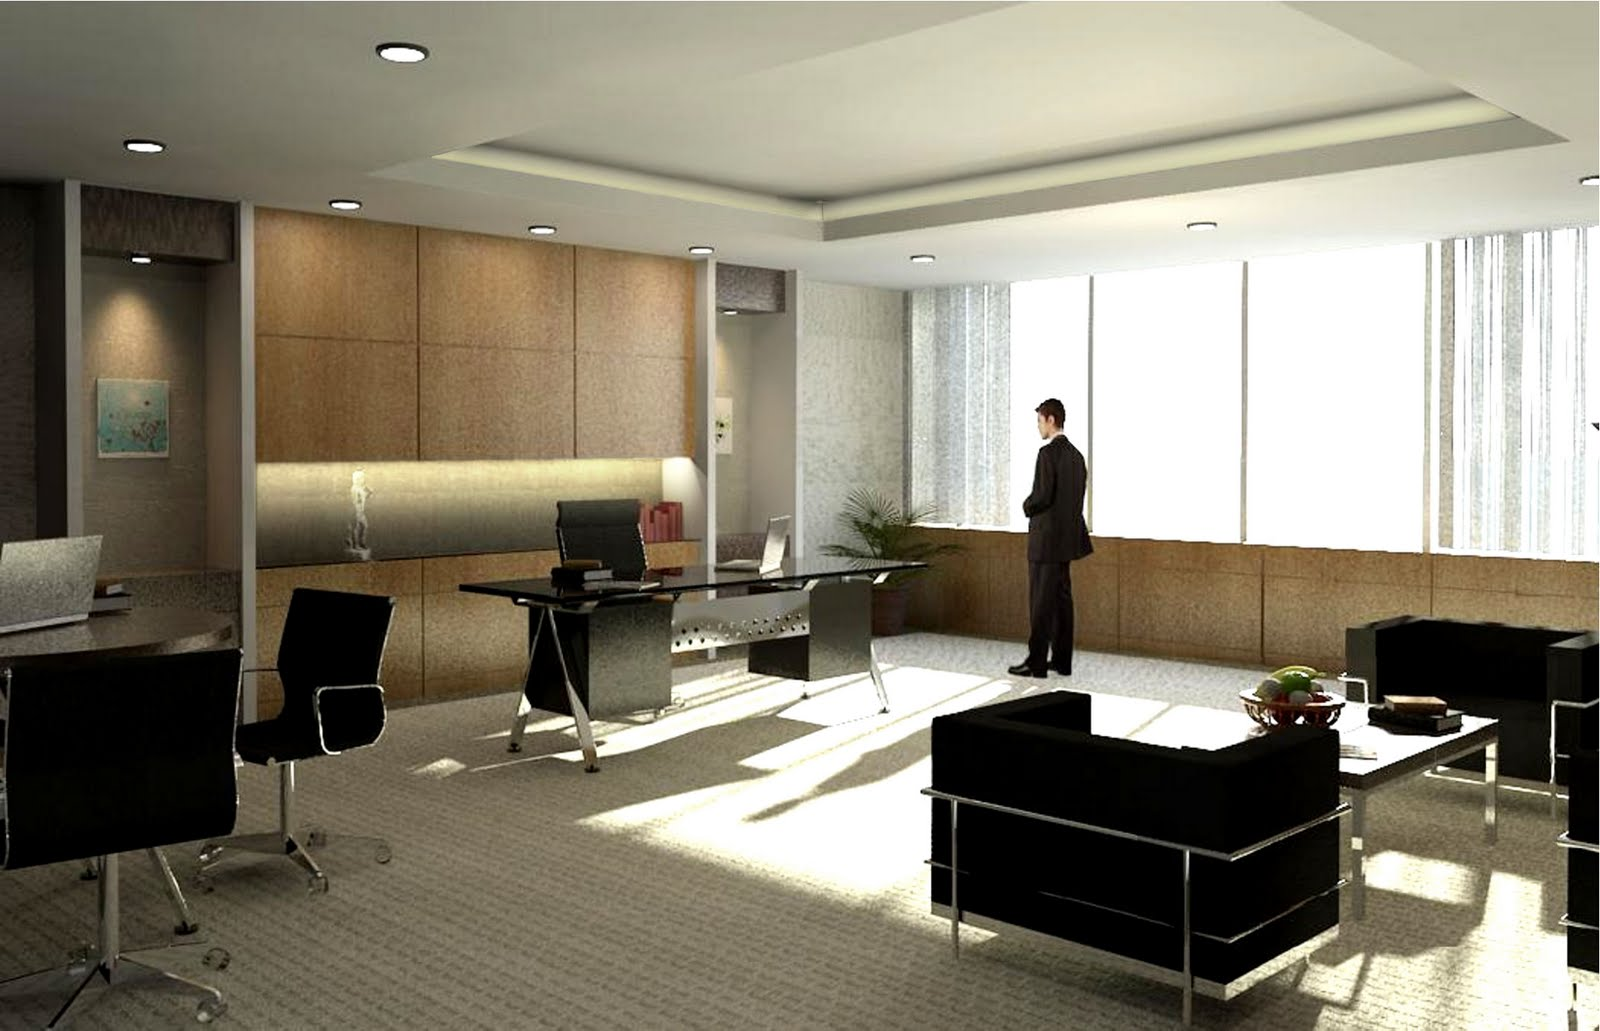 Rekaruang ruang direktur interior project for Director office room design